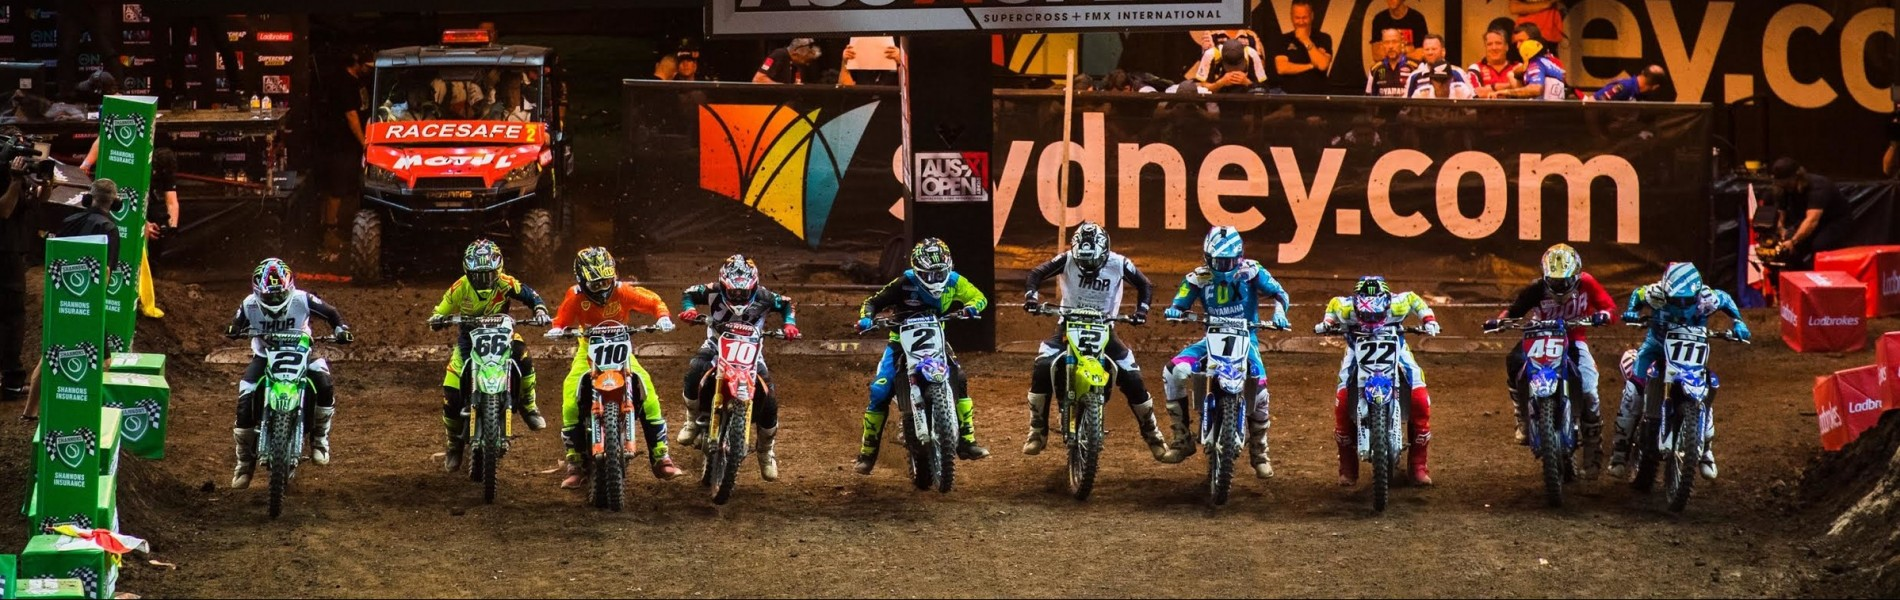 AUS-X Open Sydney 2016 Day 2 Chad Reed Ryan Villopoto